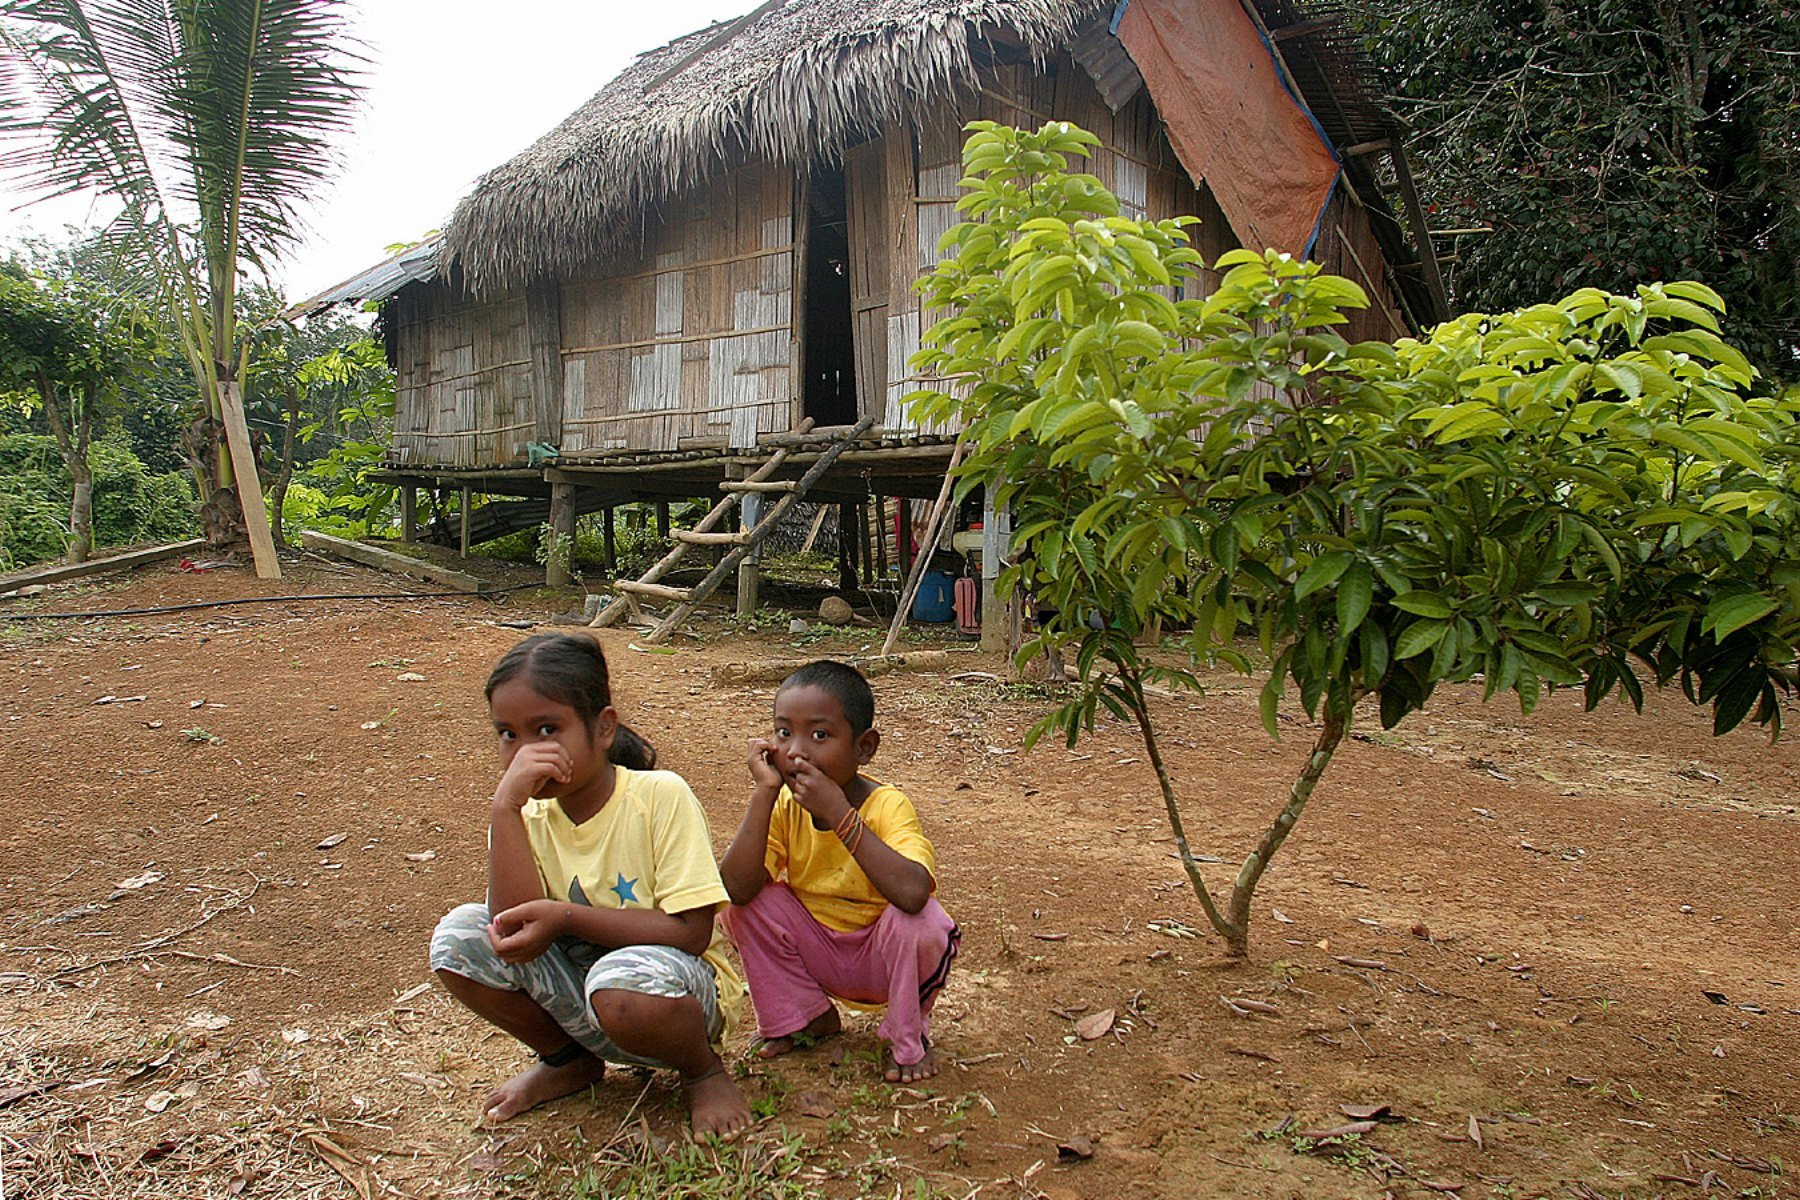 kids-infront-of-their-hut-small-file10-17-2011